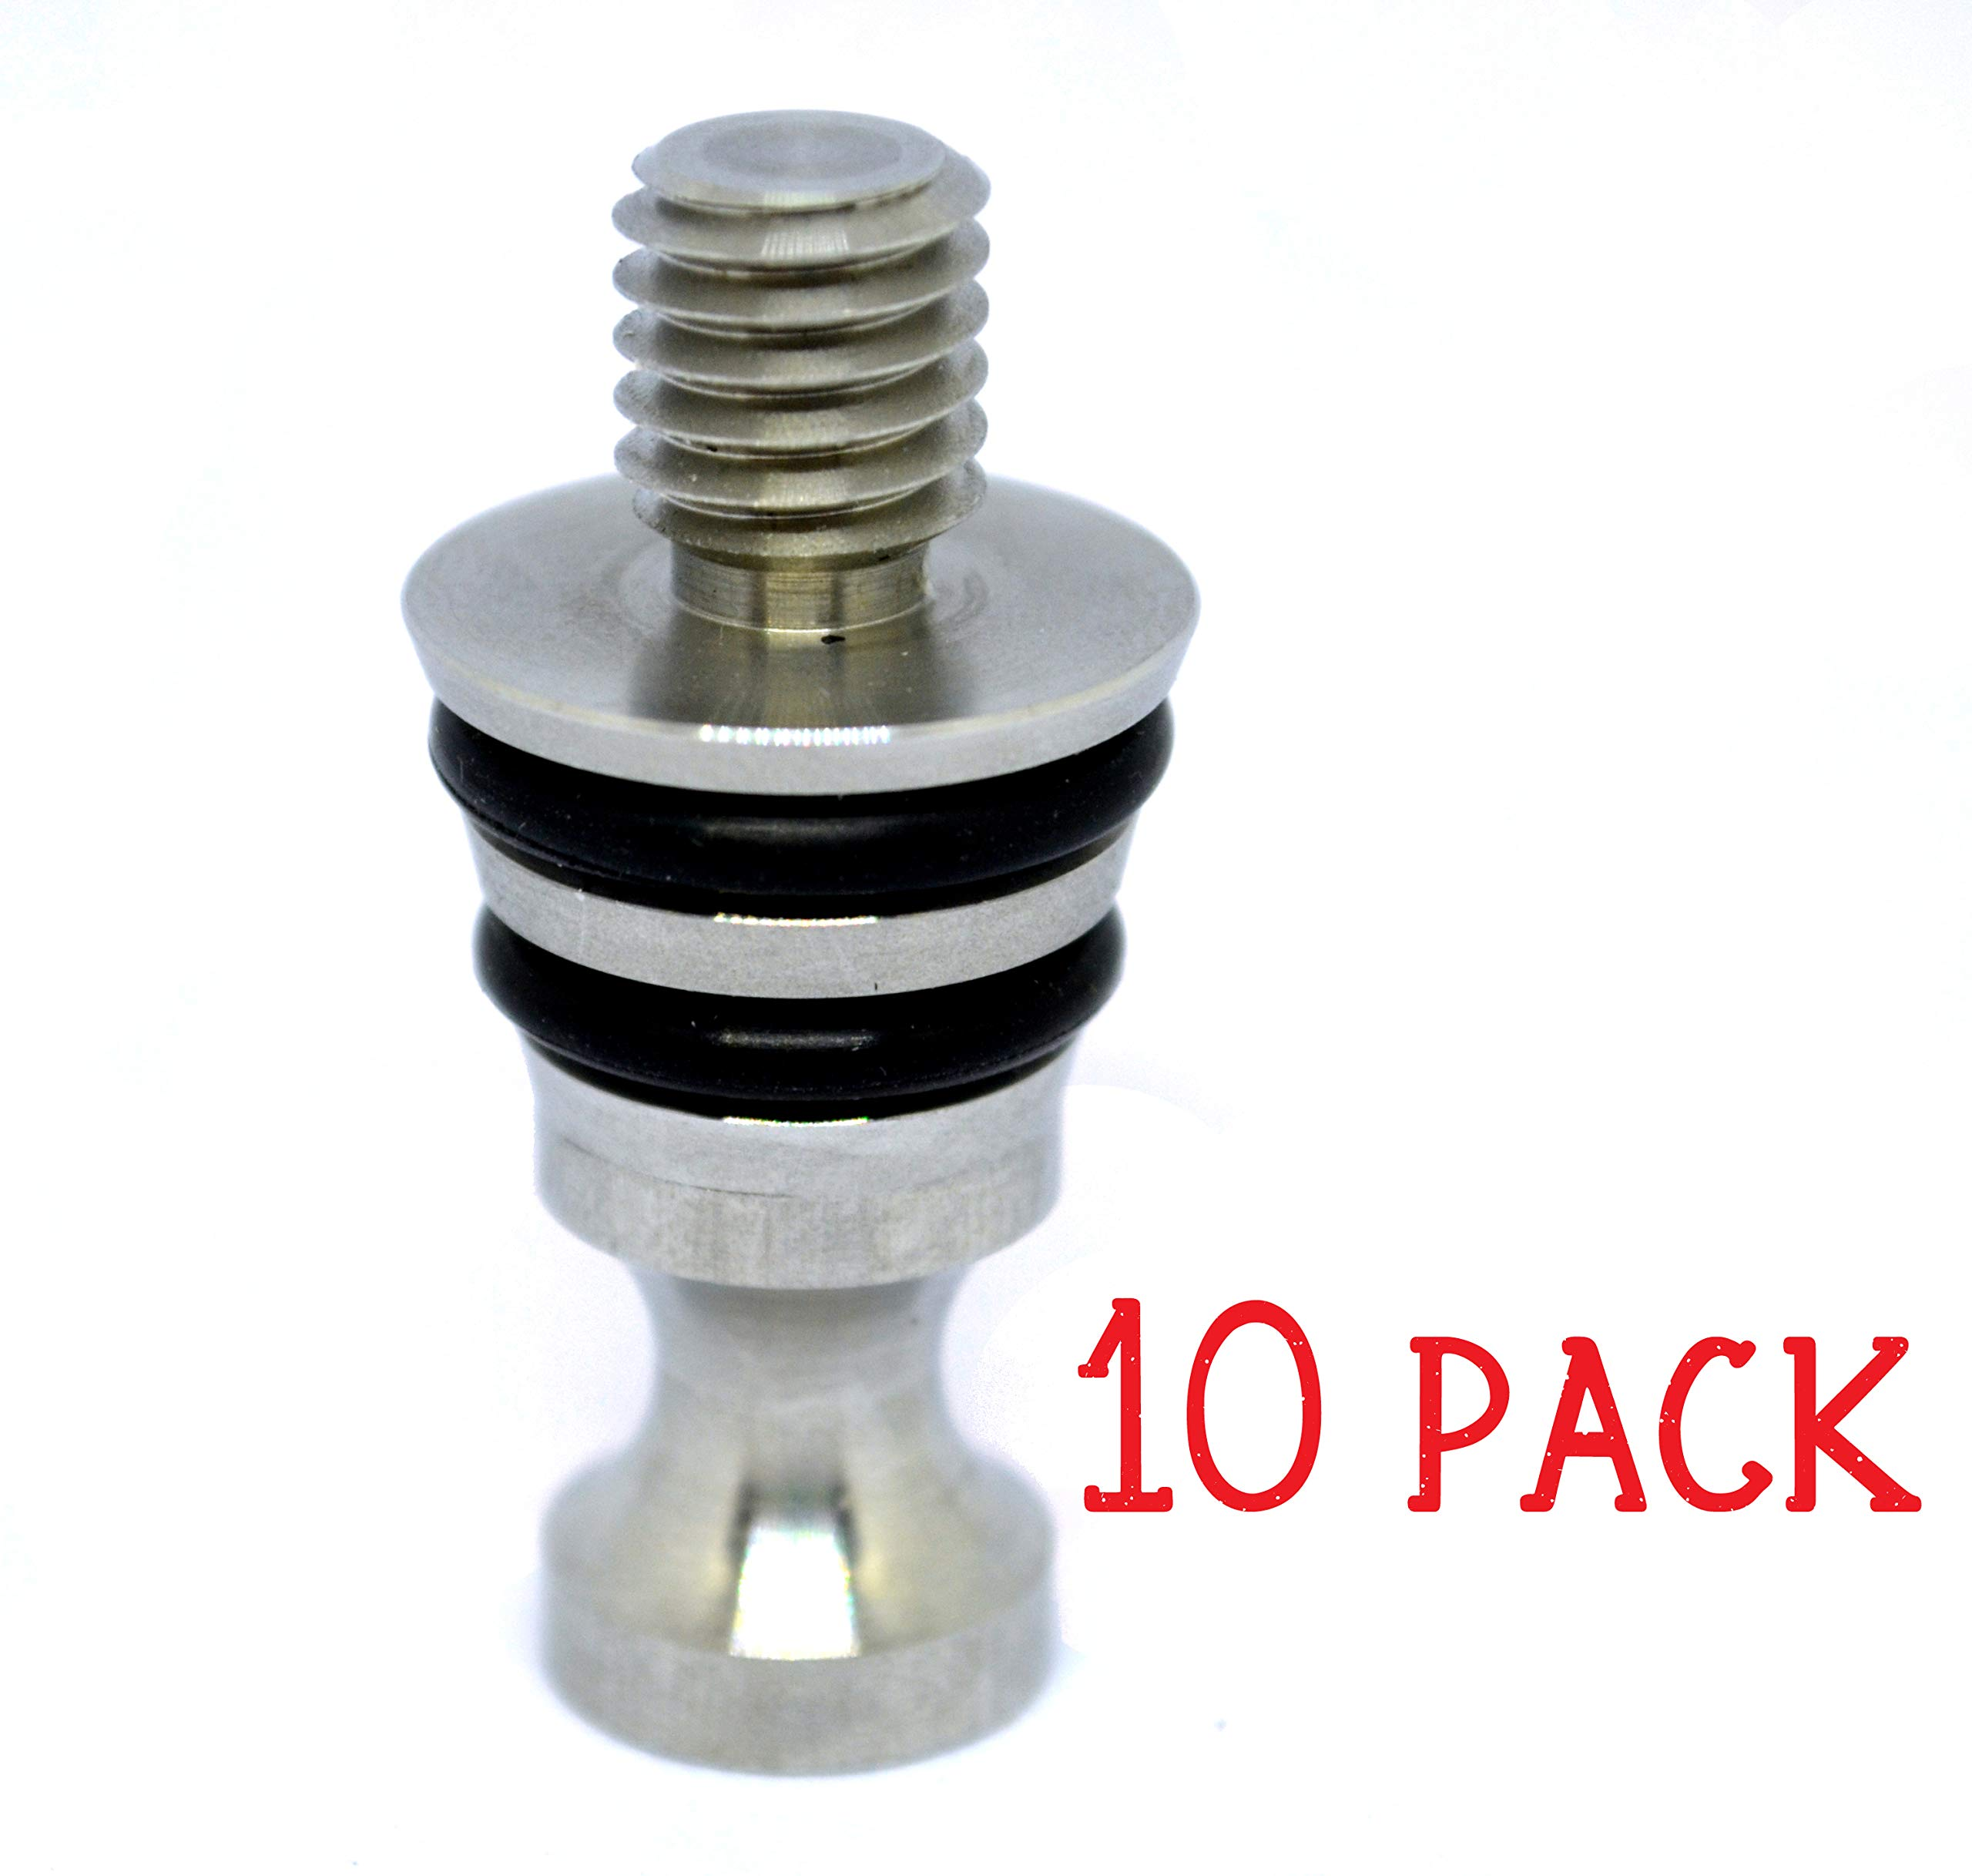 10 Pack Stainless Steel Standing Wine Bottle Stopper Hardware Kit for Wood Turning